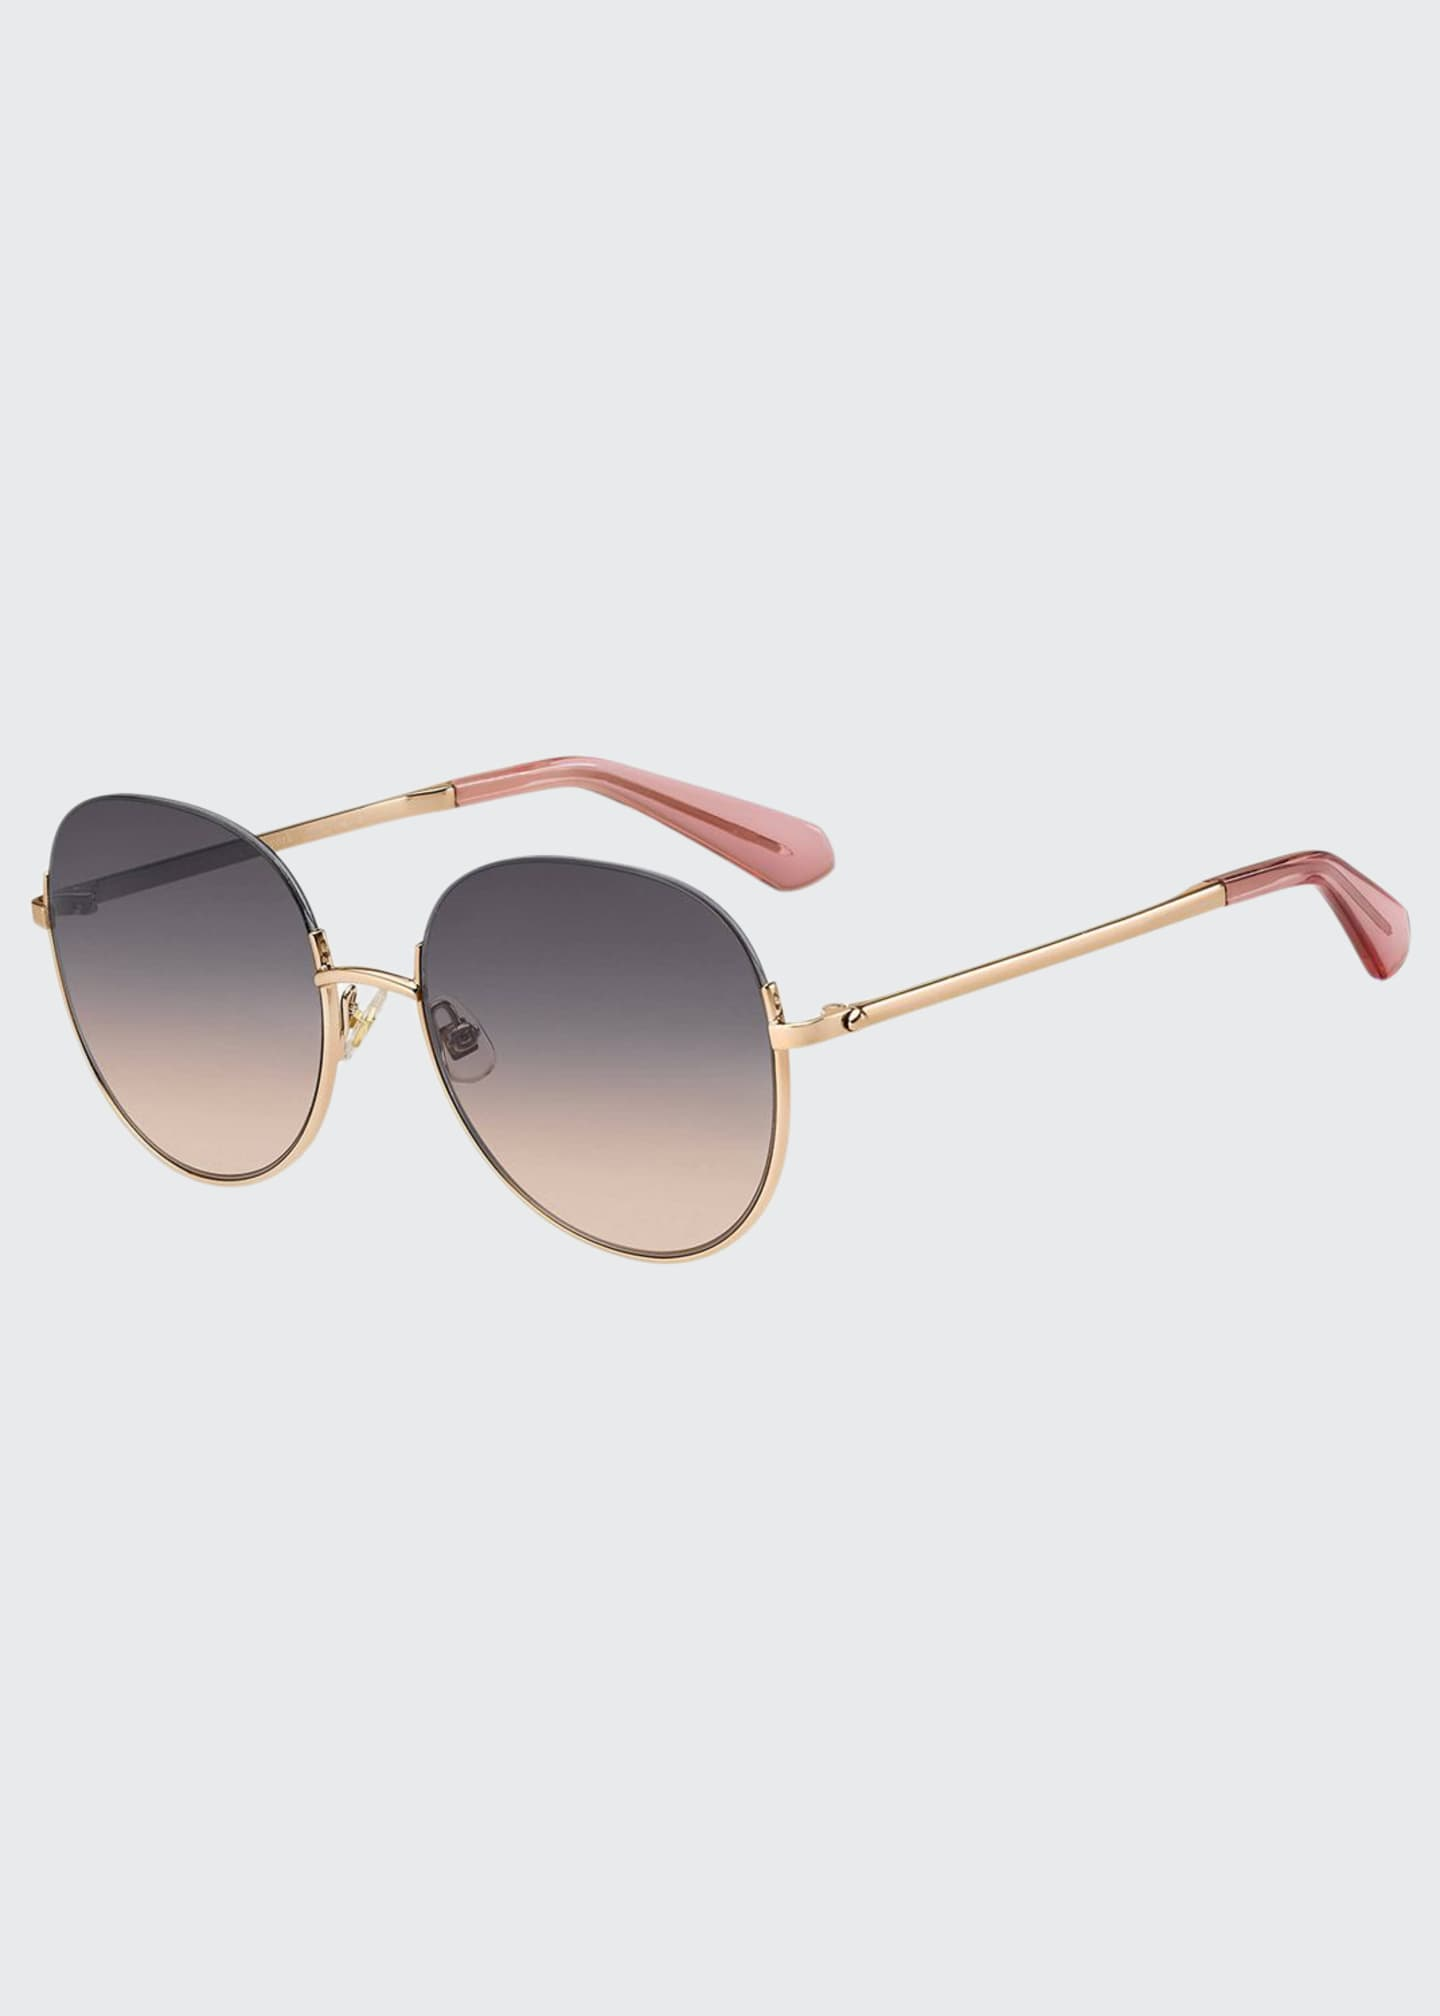 Image 1 of 1: astelle semi-rimless round stainless steel sunglasses